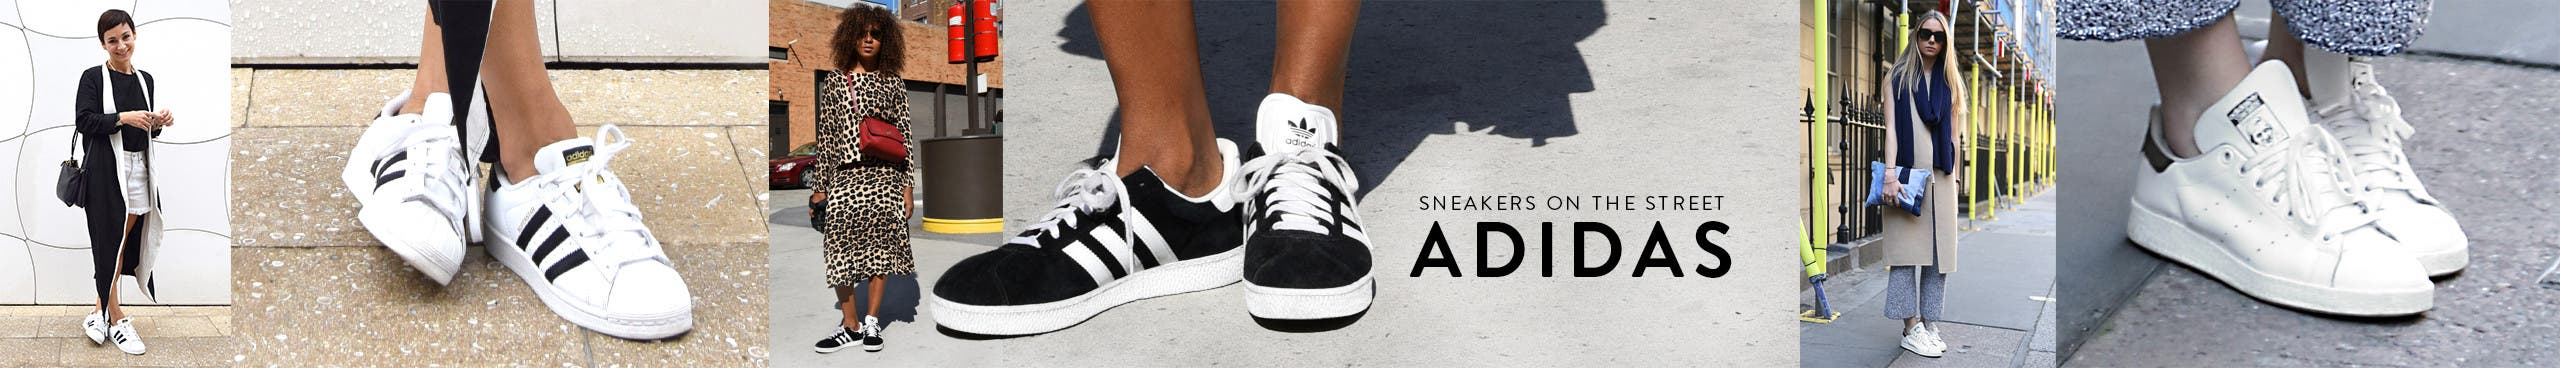 Sneakers on the street: adidas.